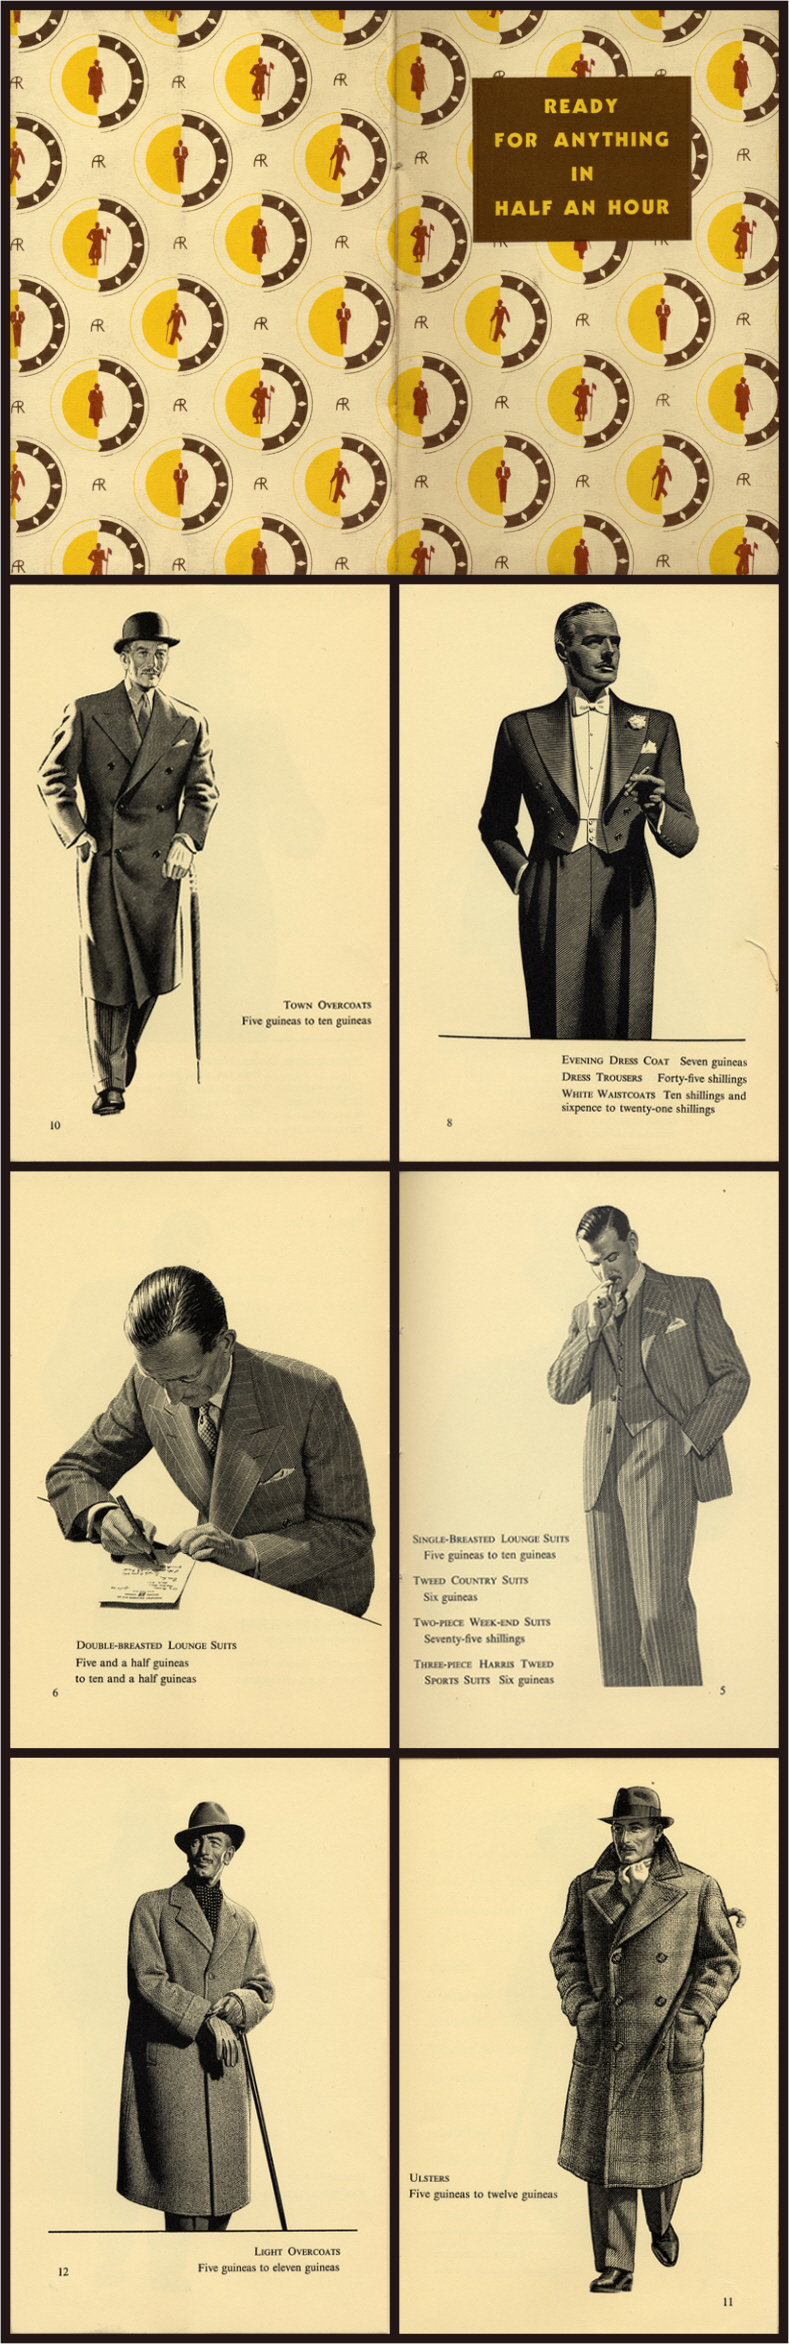 Men S Fashion Sales Brochure Ready For Anything In Half An Hour 1930s Austin Reed Tailoring Shops Eng Vintage Advertisements Vintage Gentleman Fashion Sale